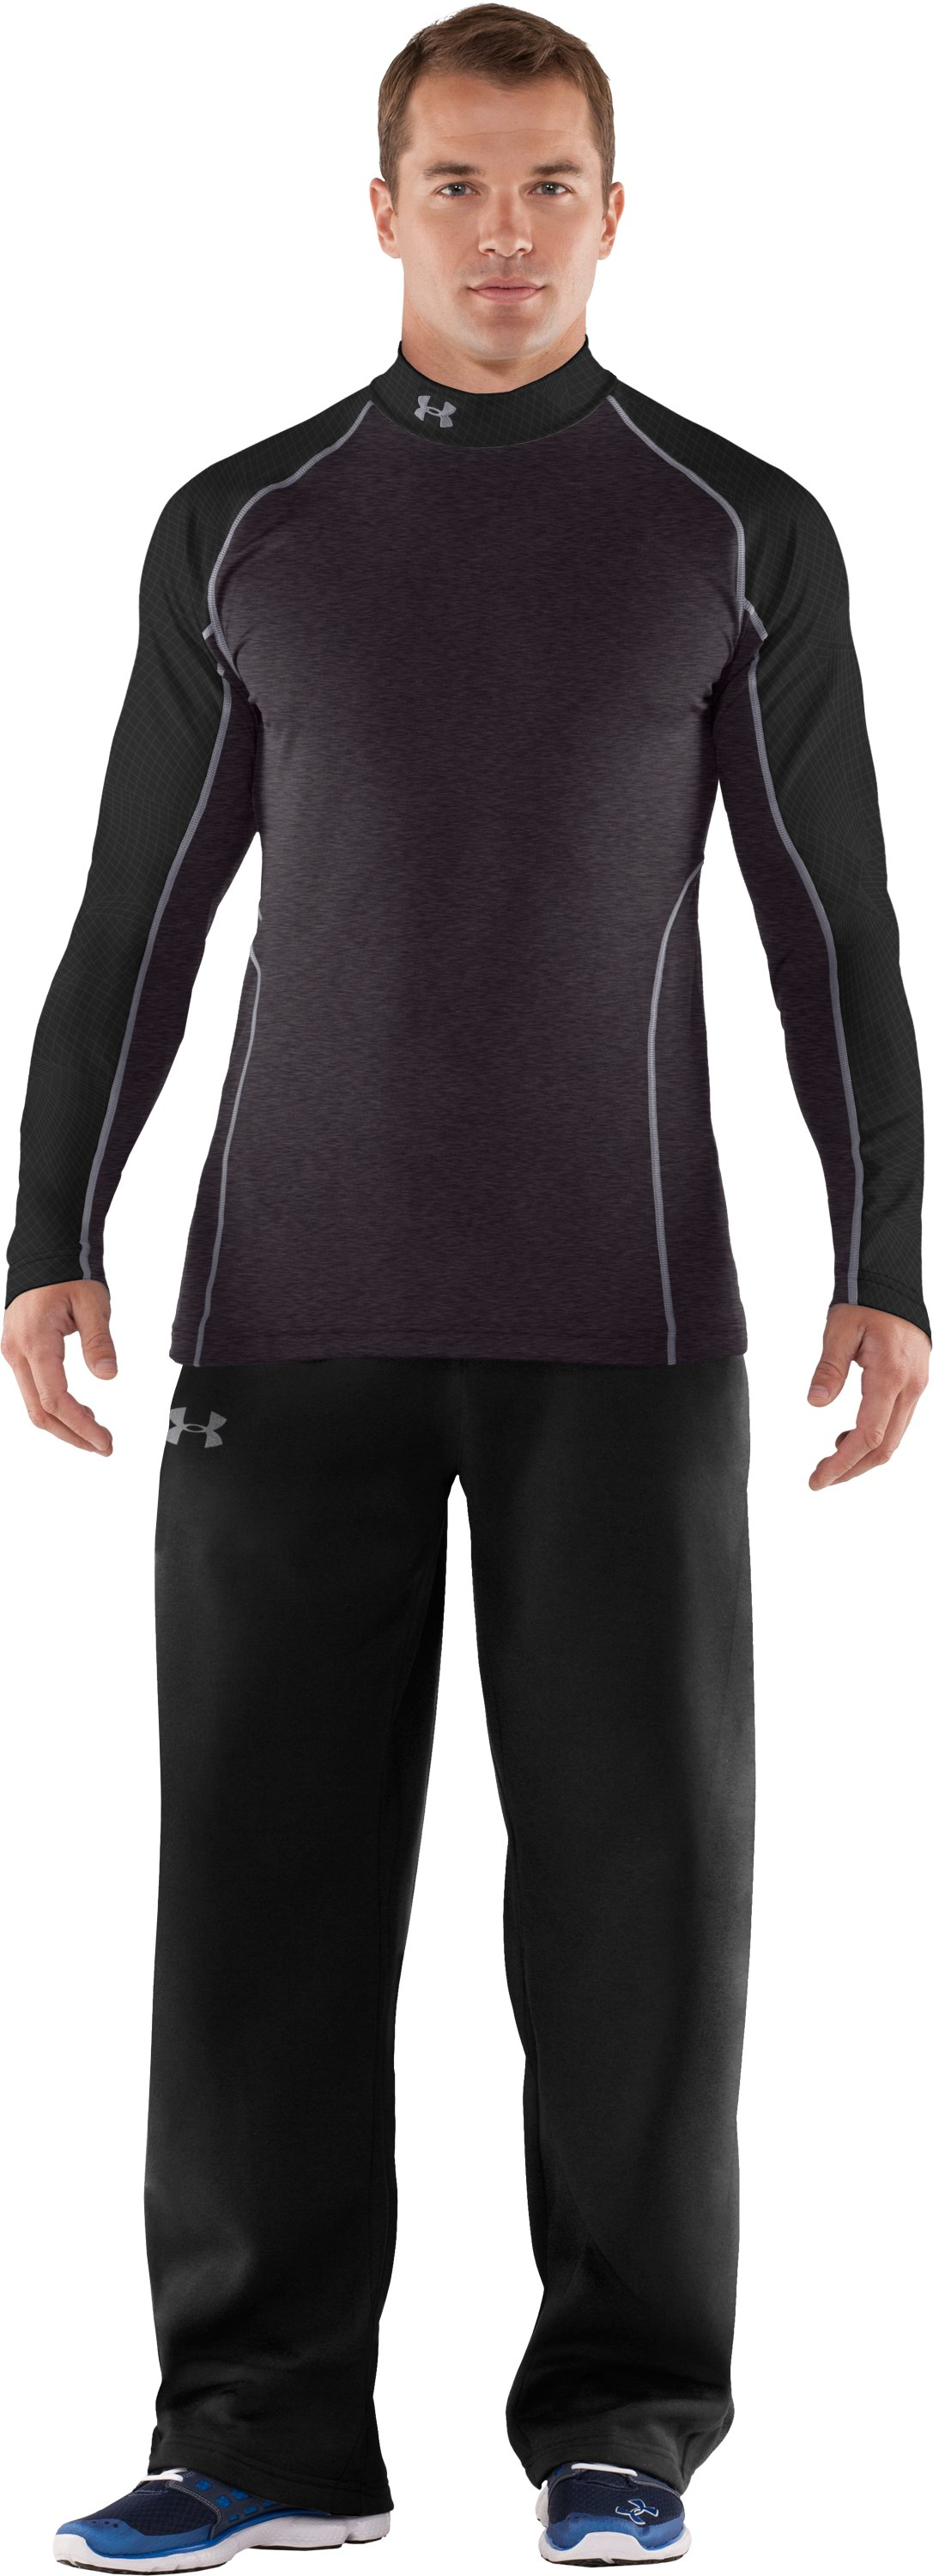 Men's UA Competition Fitted Baselayer Mock, Carbon Heather, zoomed image